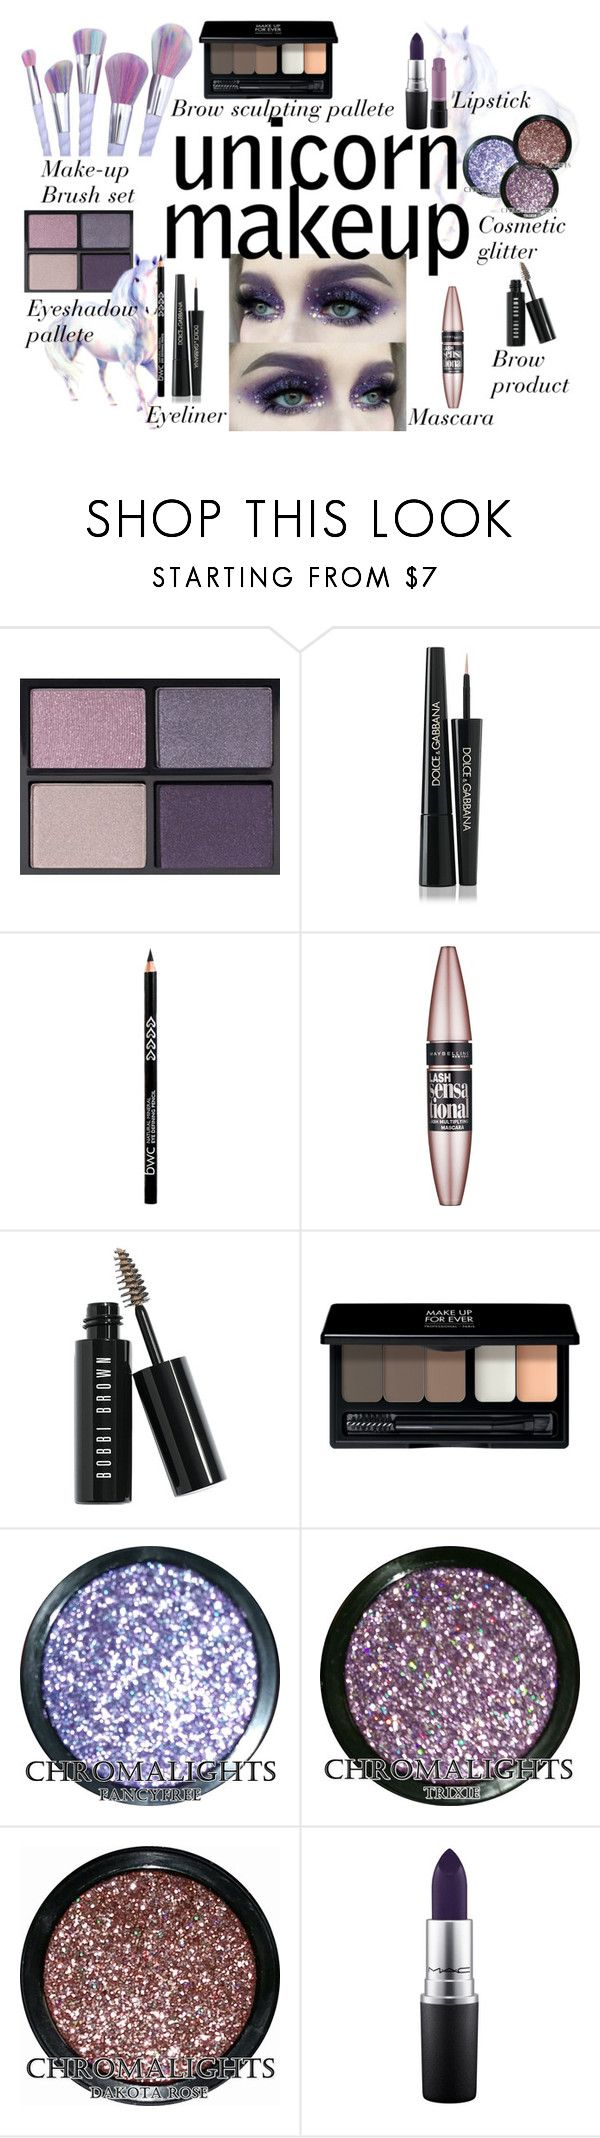 """Unicorn Make-up"" by fashion-nova ❤ liked on Polyvore featuring beauty, Tom Ford, Dolce&Gabbana, Maybelline, Bobbi Brown Cosmetics, MAKE UP FOR EVER and MAC Cosmetics"